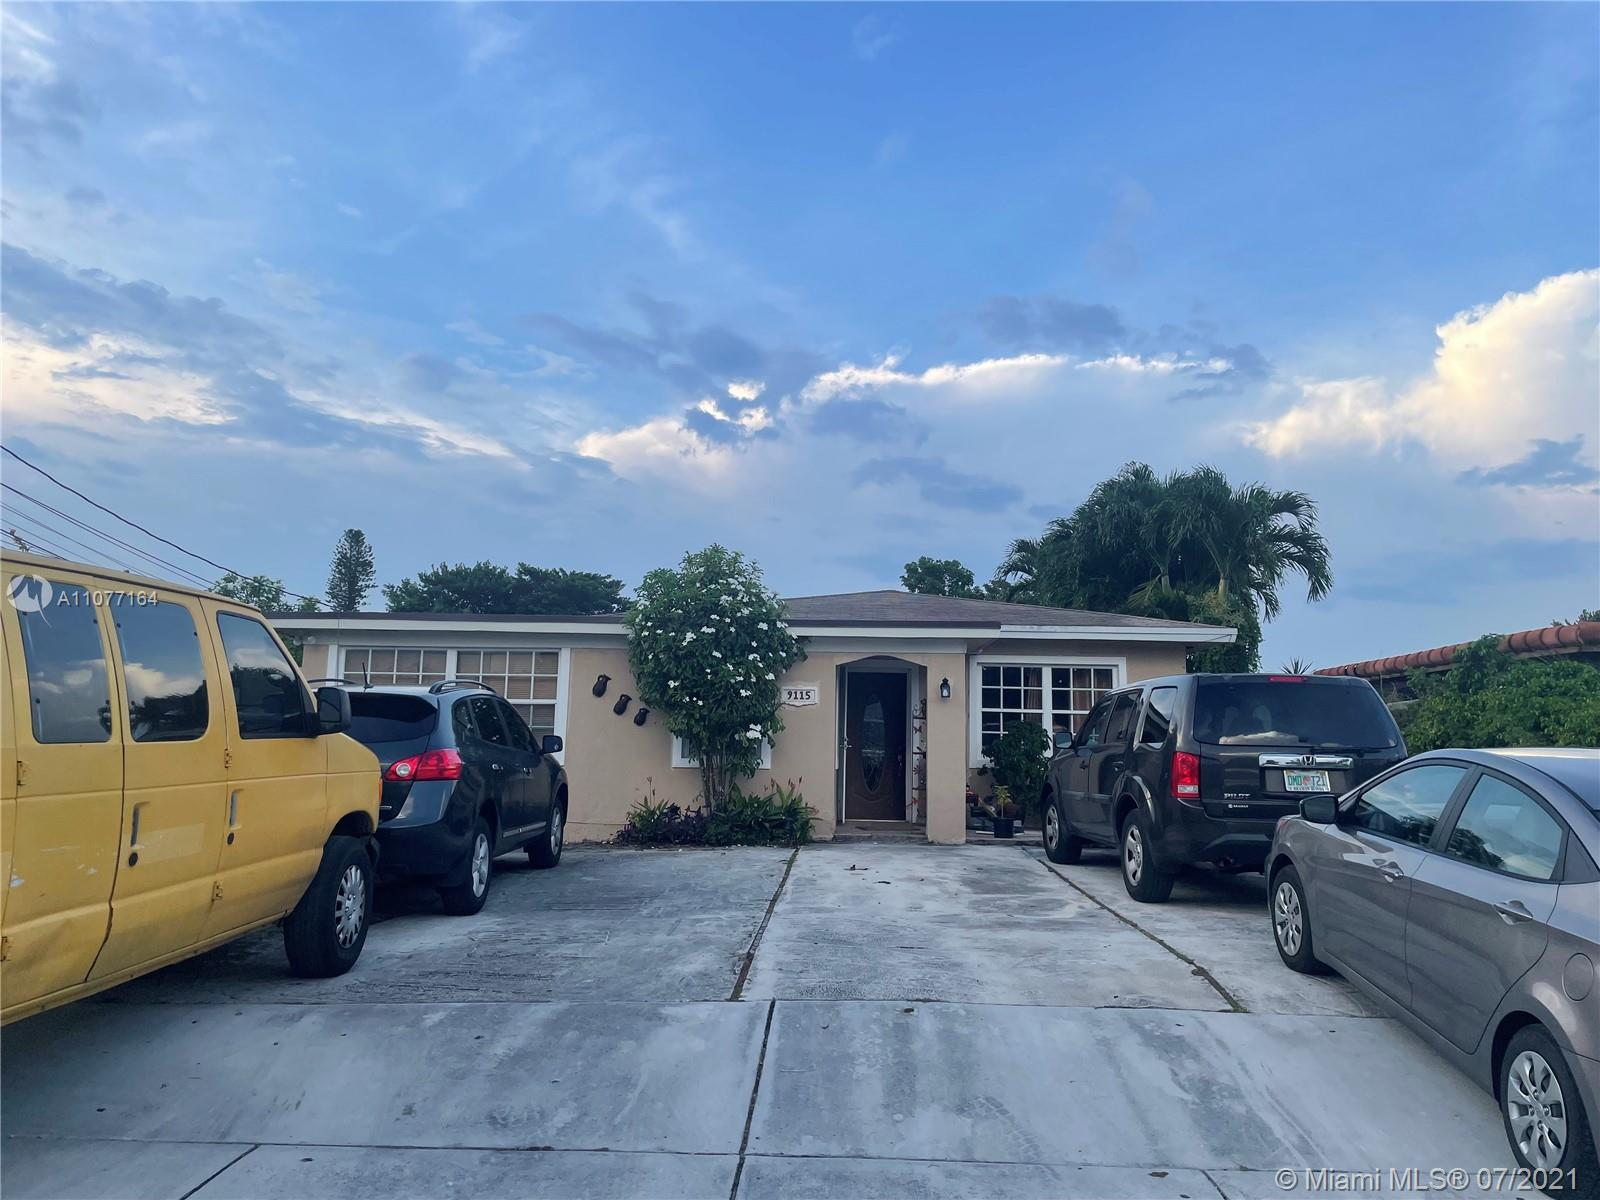 Photo of 9115 SW 27th St, Home